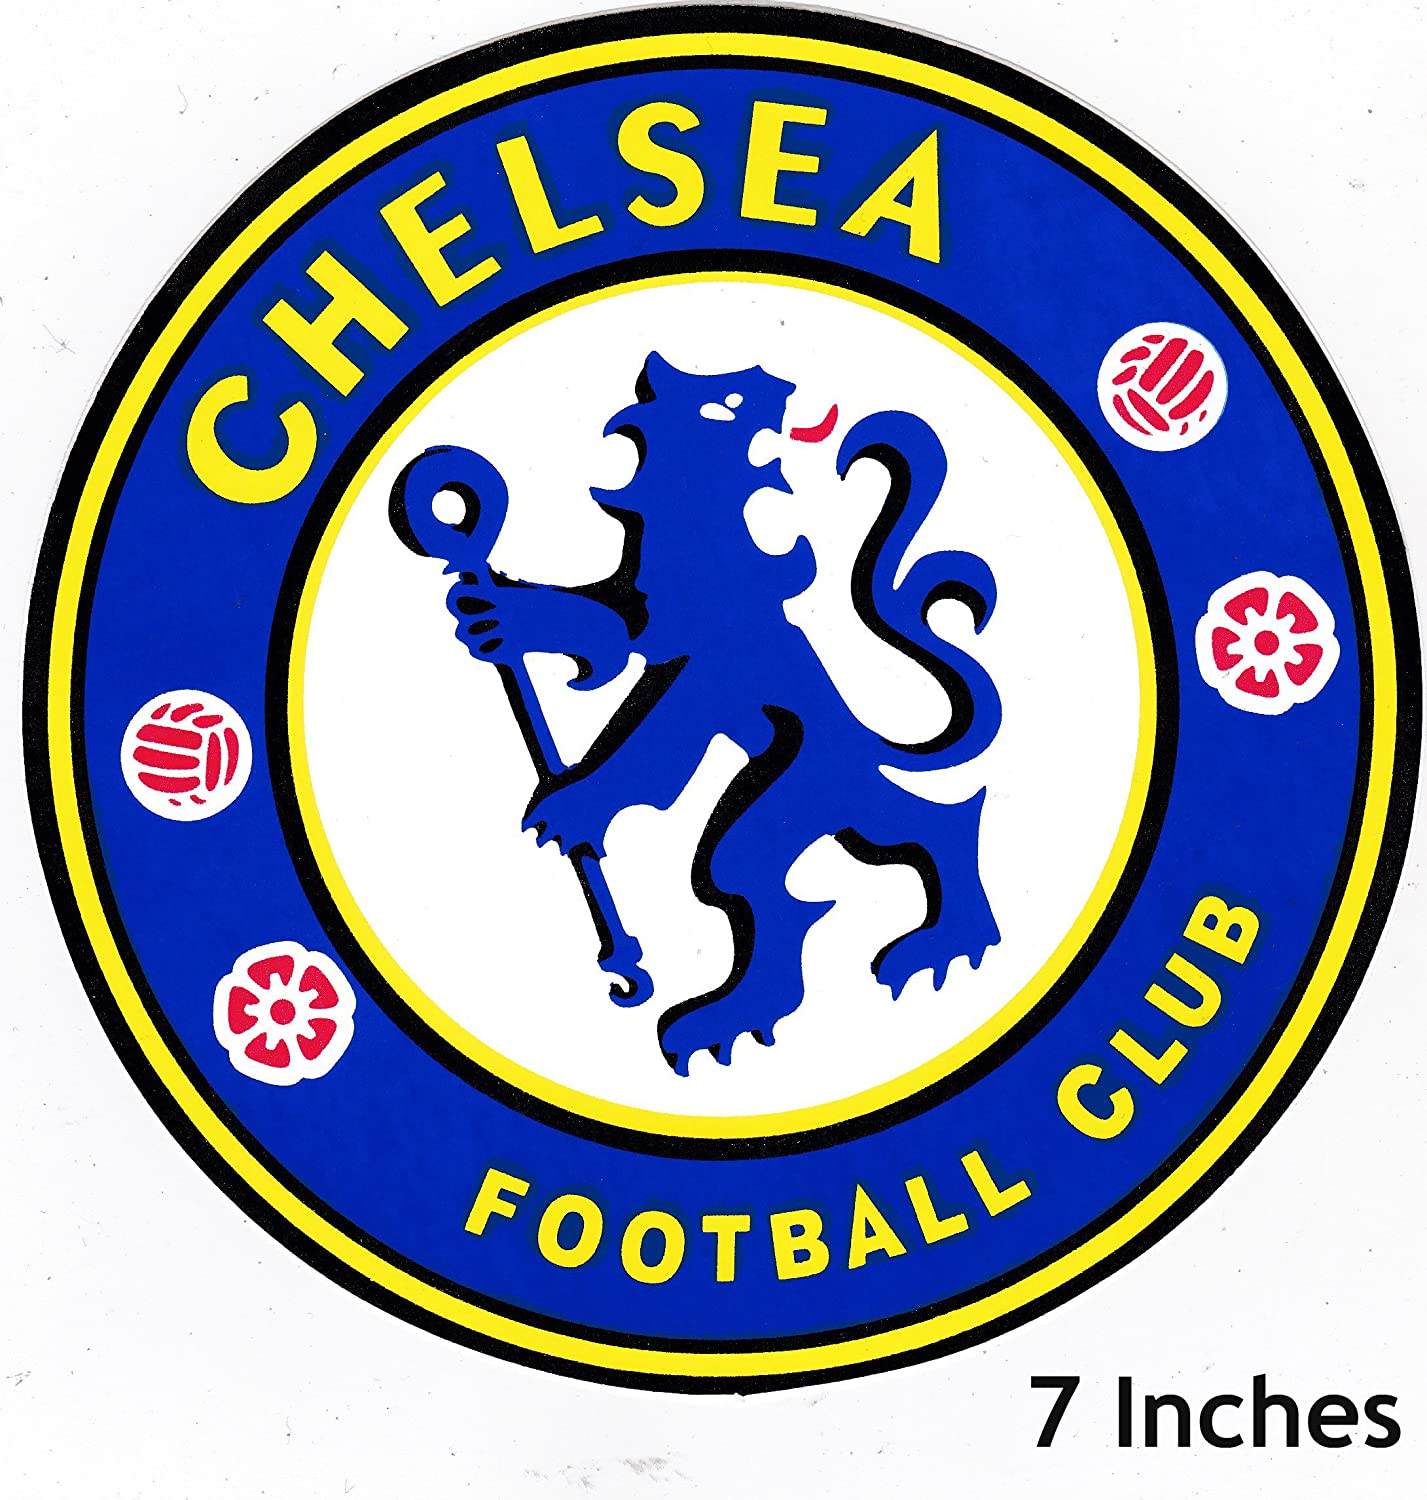 Amazon Com Big Sticker Chelsea Fc Home Football Club Soccer Team Sports Wall Window Room Decoration Luggage Suitcase Skate Board Case Covers Car Bumper Vinyl Die Cut Adhesive Decal 7 Inches Home [ 1500 x 1427 Pixel ]